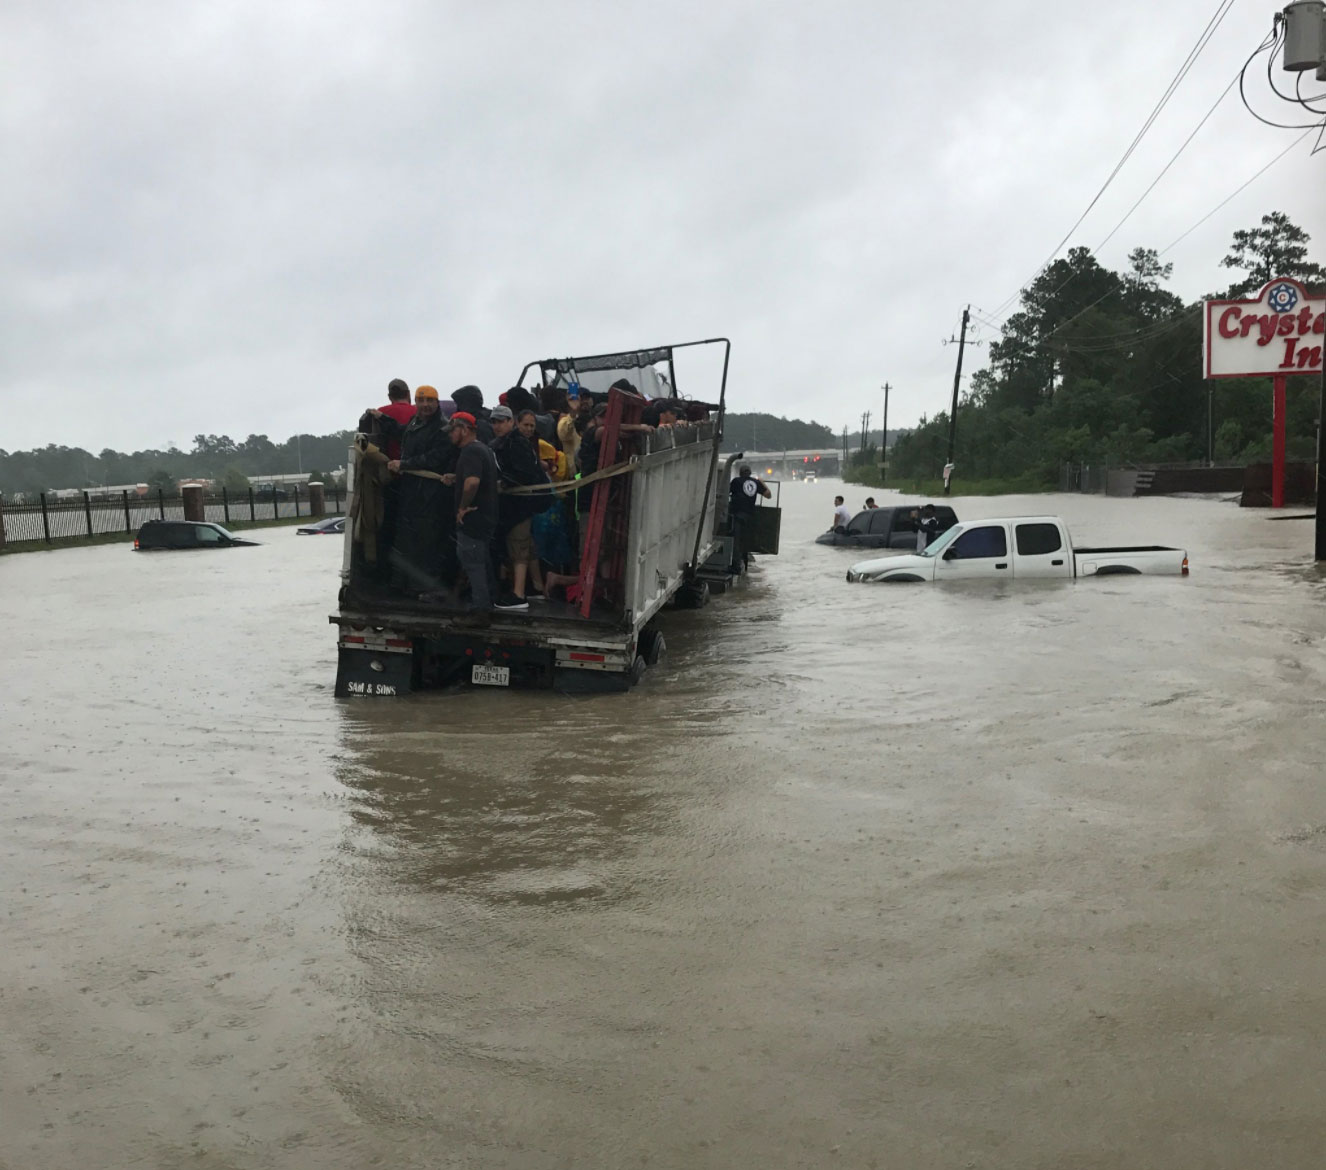 "<div class=""meta image-caption""><div class=""origin-logo origin-image none""><span>none</span></div><span class=""caption-text"">The Harris County Sheriff posted this photo of residents rescued in a convoy while helping out with rescues on Tidwell Rd in Houston. (SheriffEd_HCSO/Twitter)</span></div>"